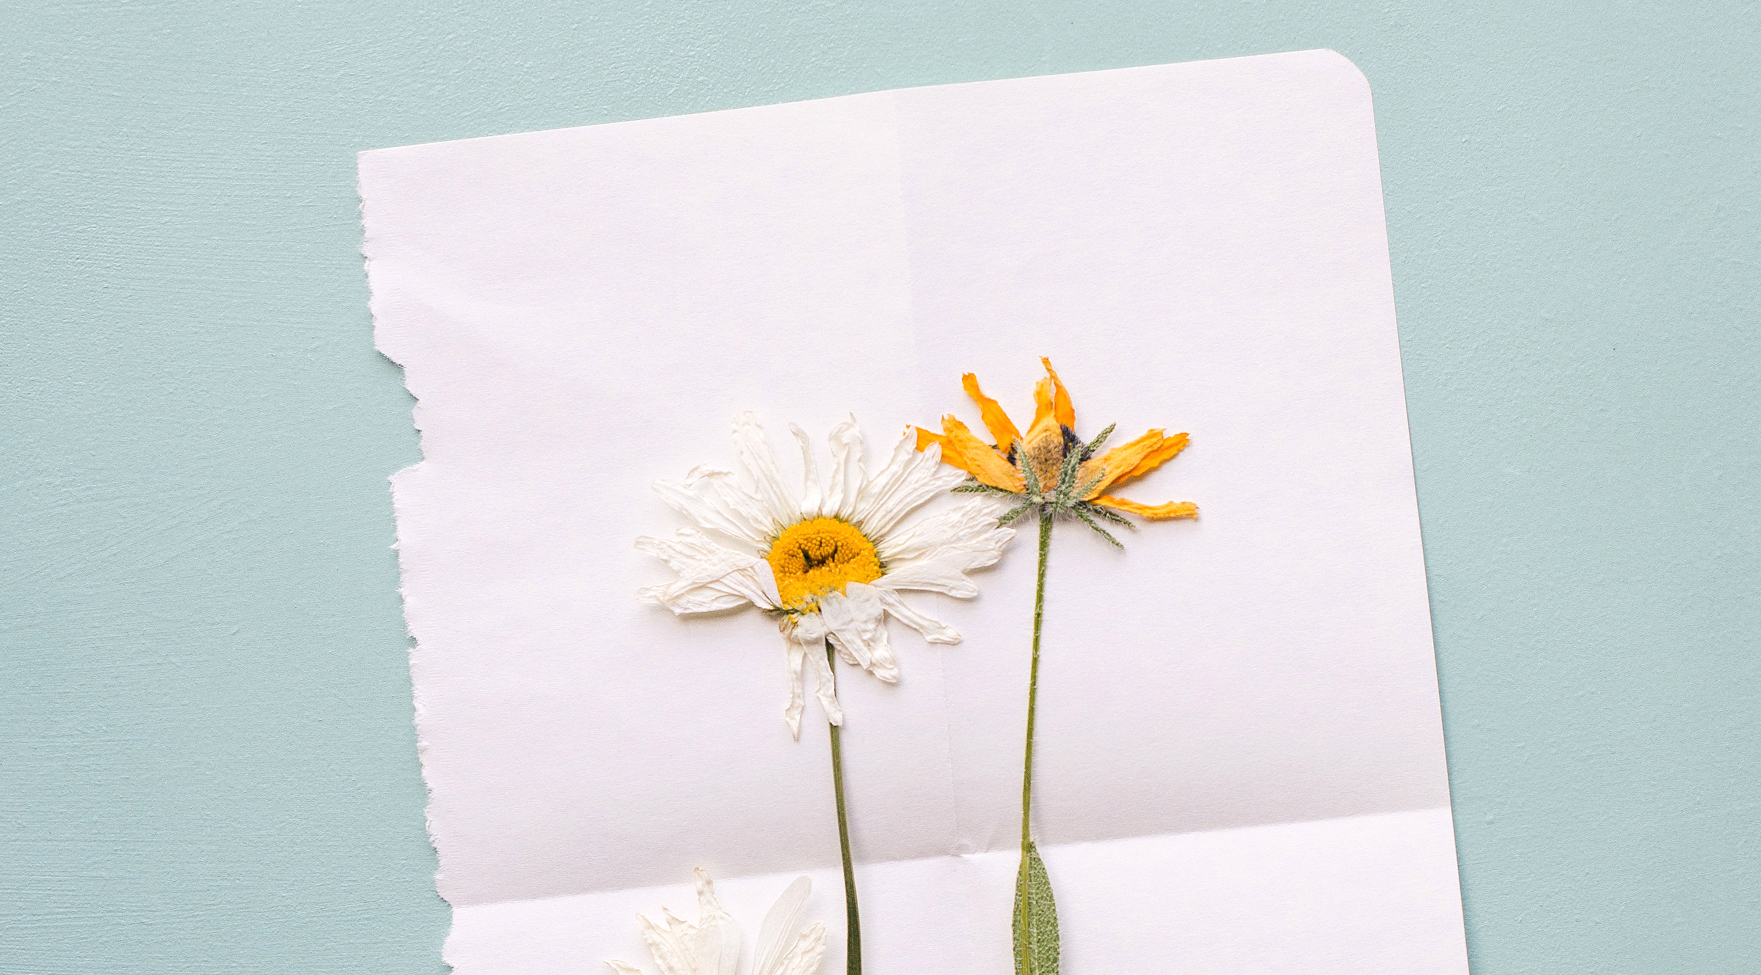 Pressed wild flowers. Paper on the Rocks is part of The Pollinators's Nationale Zaaicoalitie, which aims to make the Netherlands into a true bee paradise.